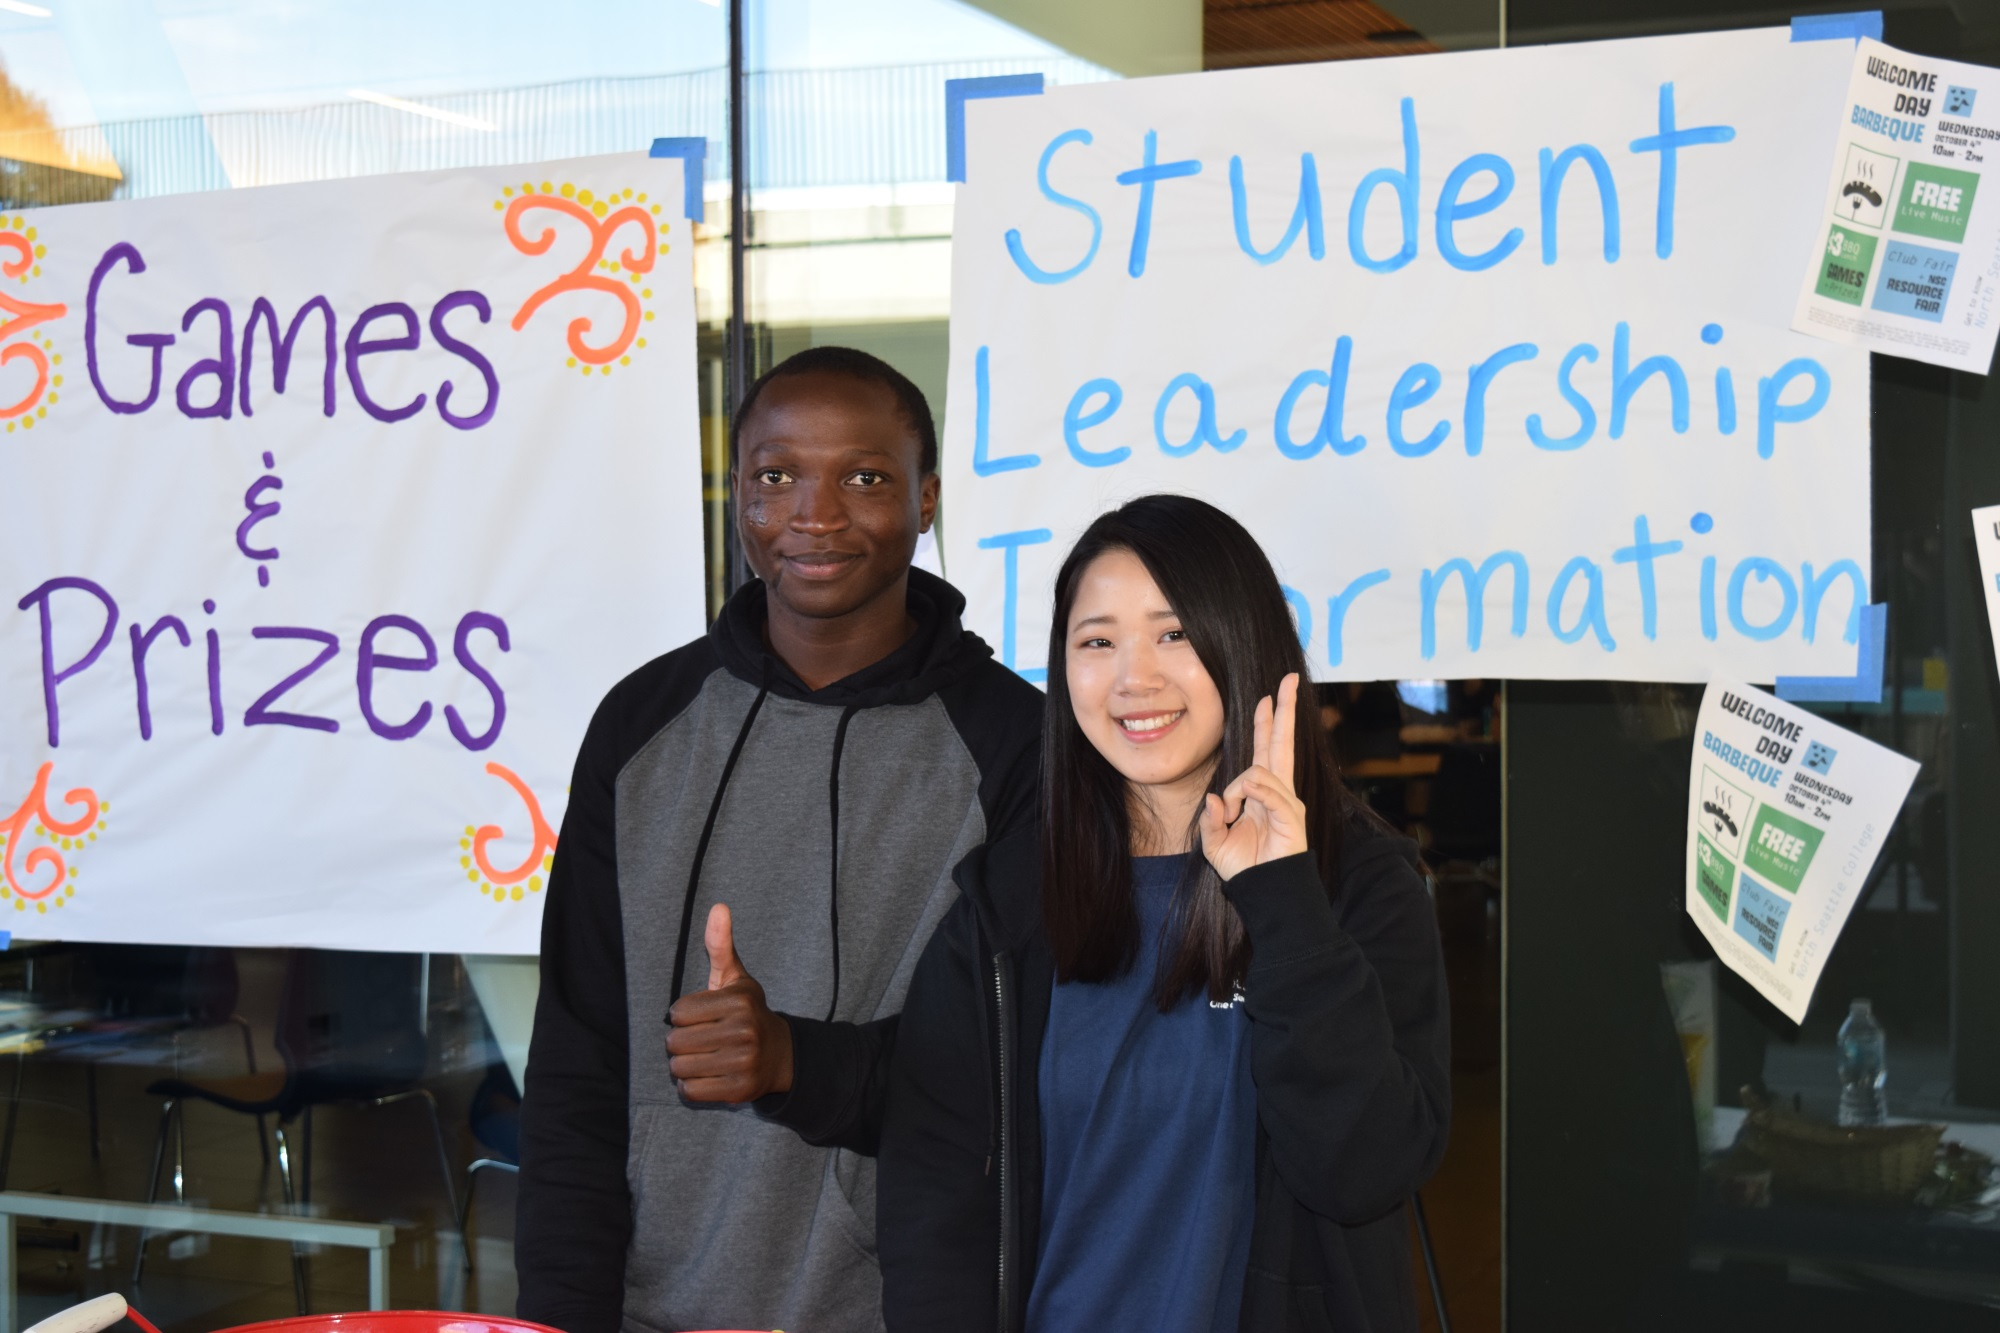 fall fest welcome, student leadership